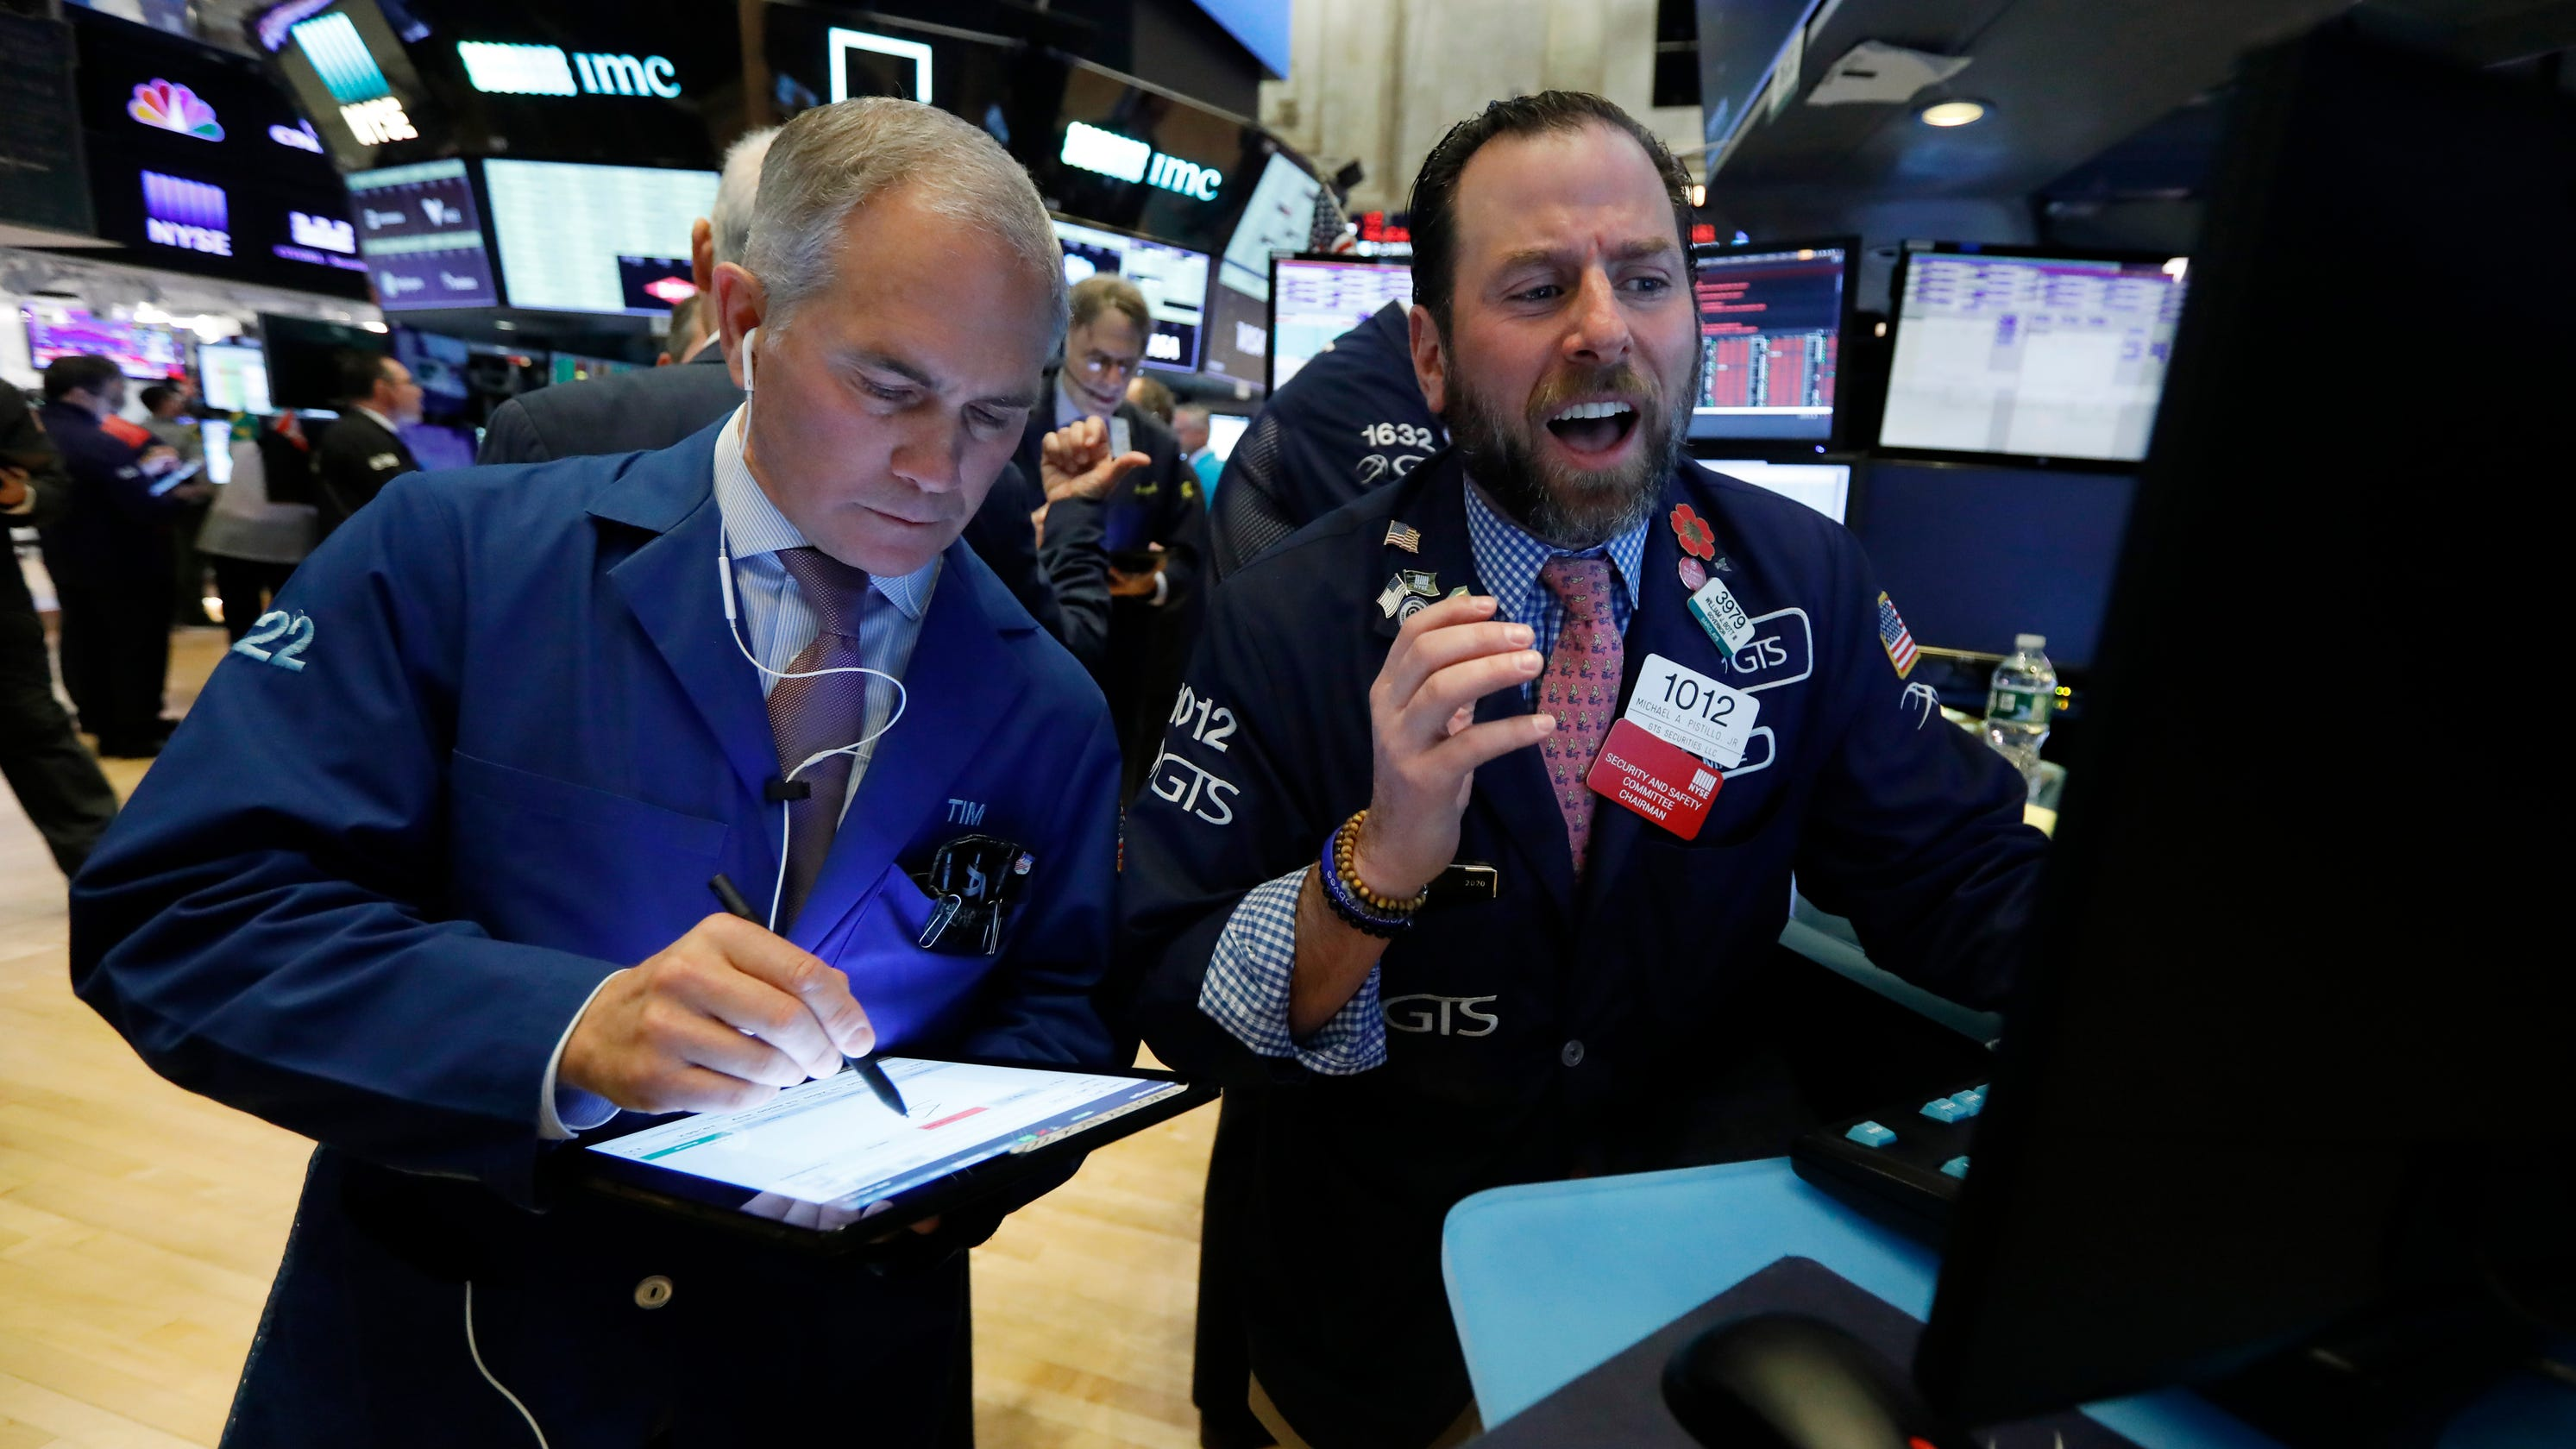 Stocks jump as Fed provides $2.3 trillion to support economy